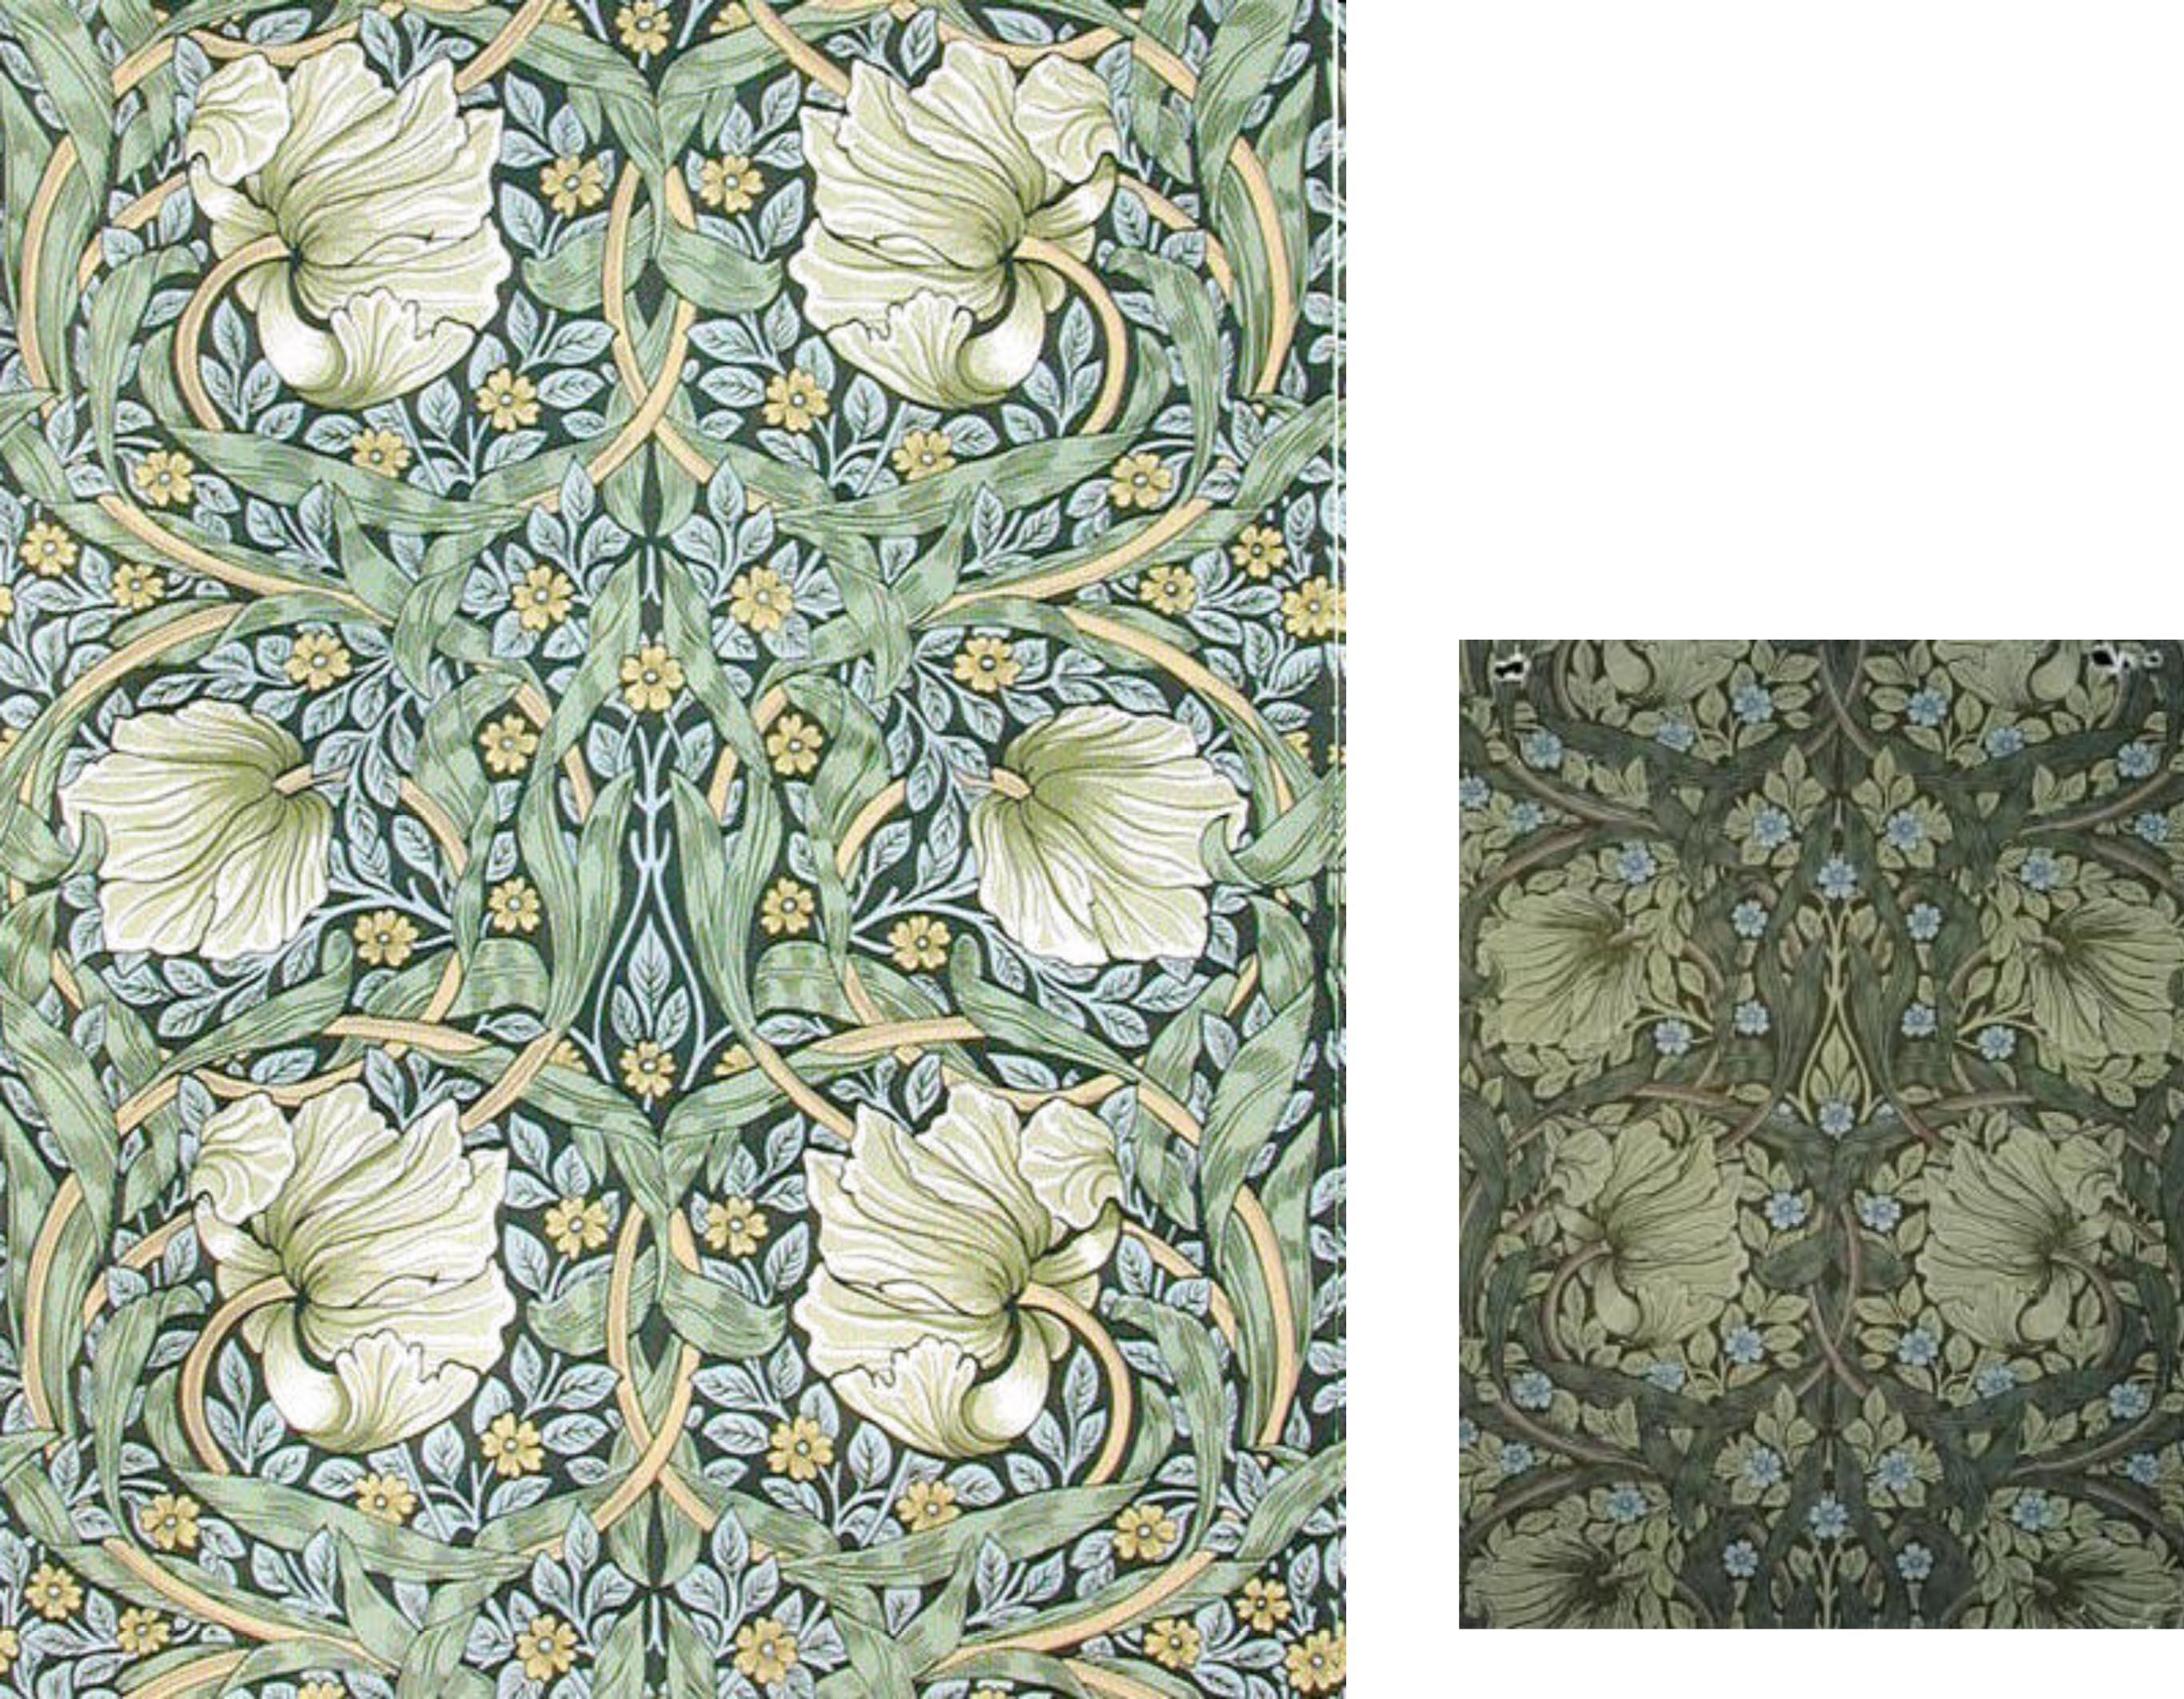 Free Download Arts And Crafts Movement Wallpaper Arts And Crafts Movement 2732x2125 For Your Desktop Mobile Tablet Explore 50 Arts And Crafts Wallpaper Books William Morris Reproduction Wallpaper William